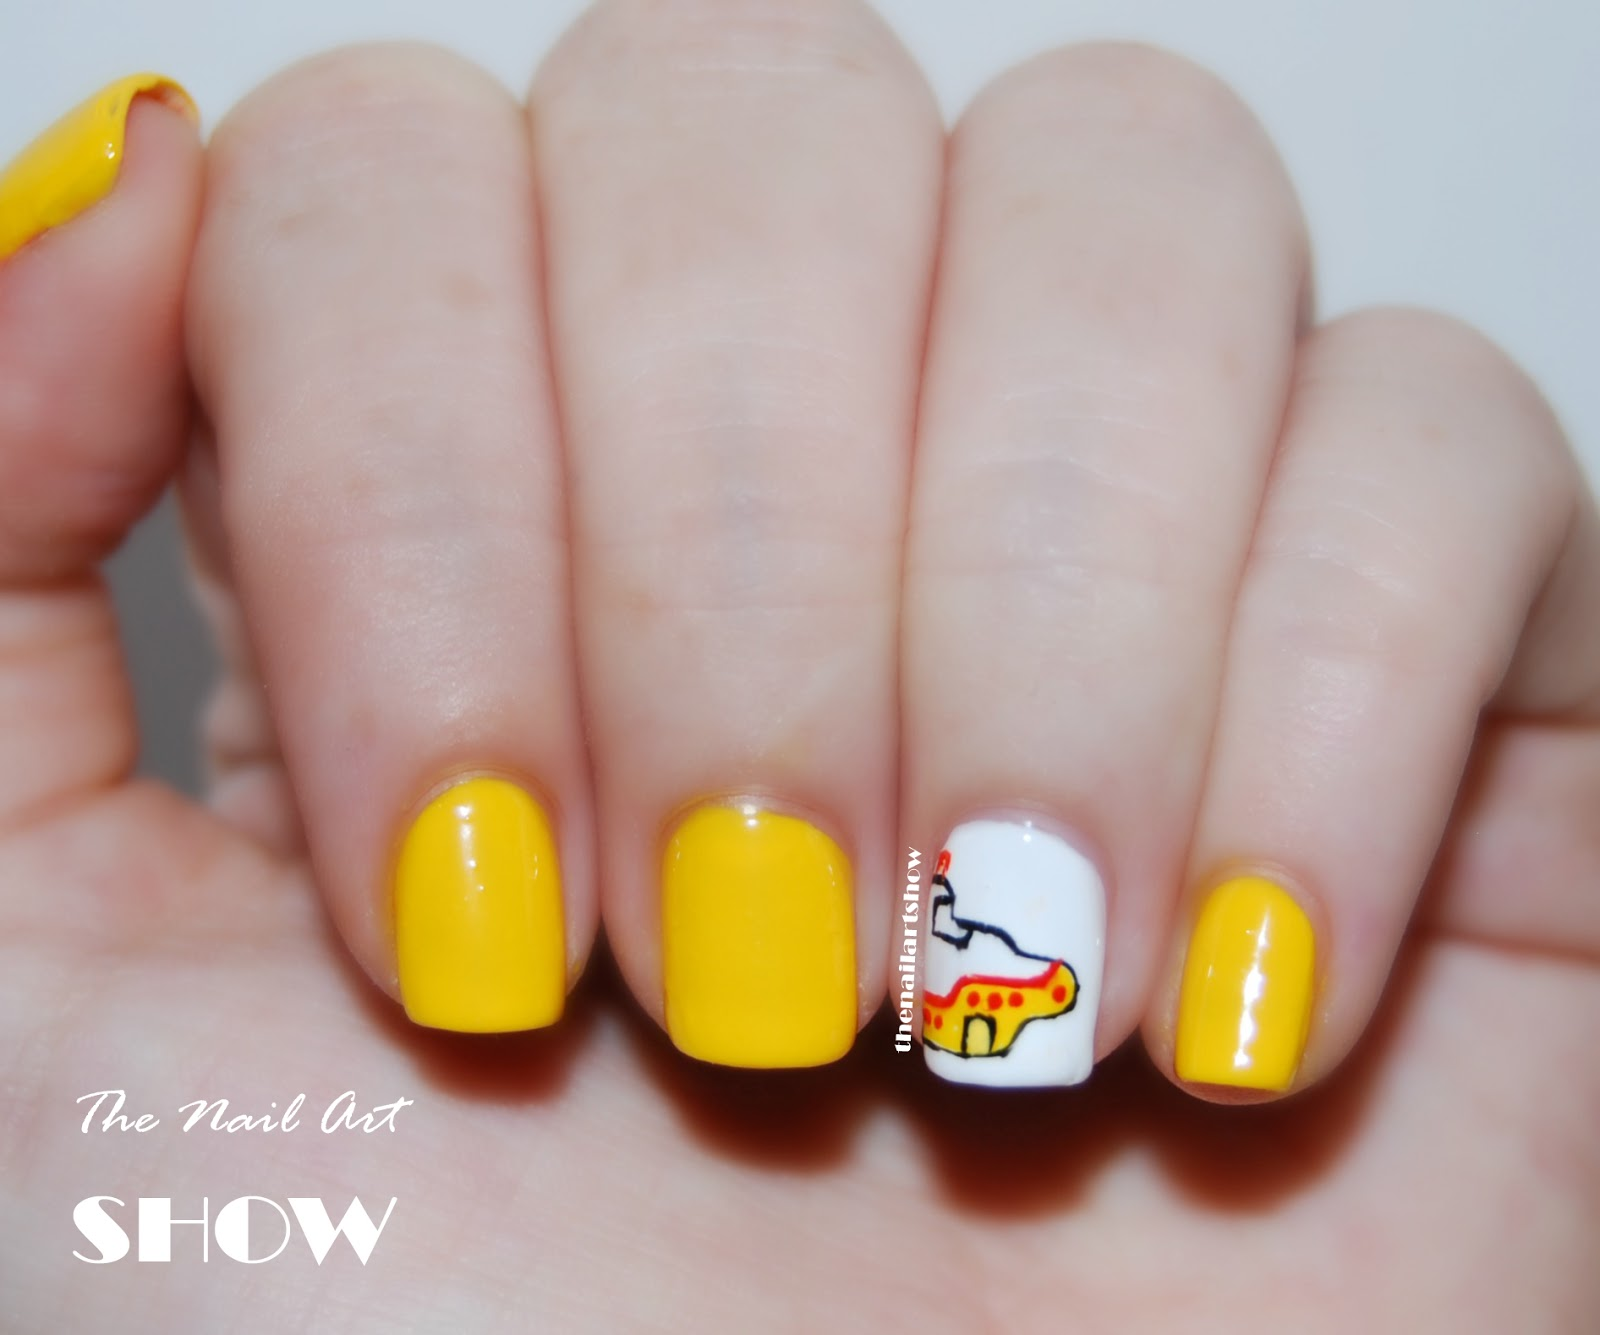 The nail art show 31 day challenge day 3 yellow nails we all 31 day challenge day 3 yellow nails we all live in a yellow submarine prinsesfo Choice Image